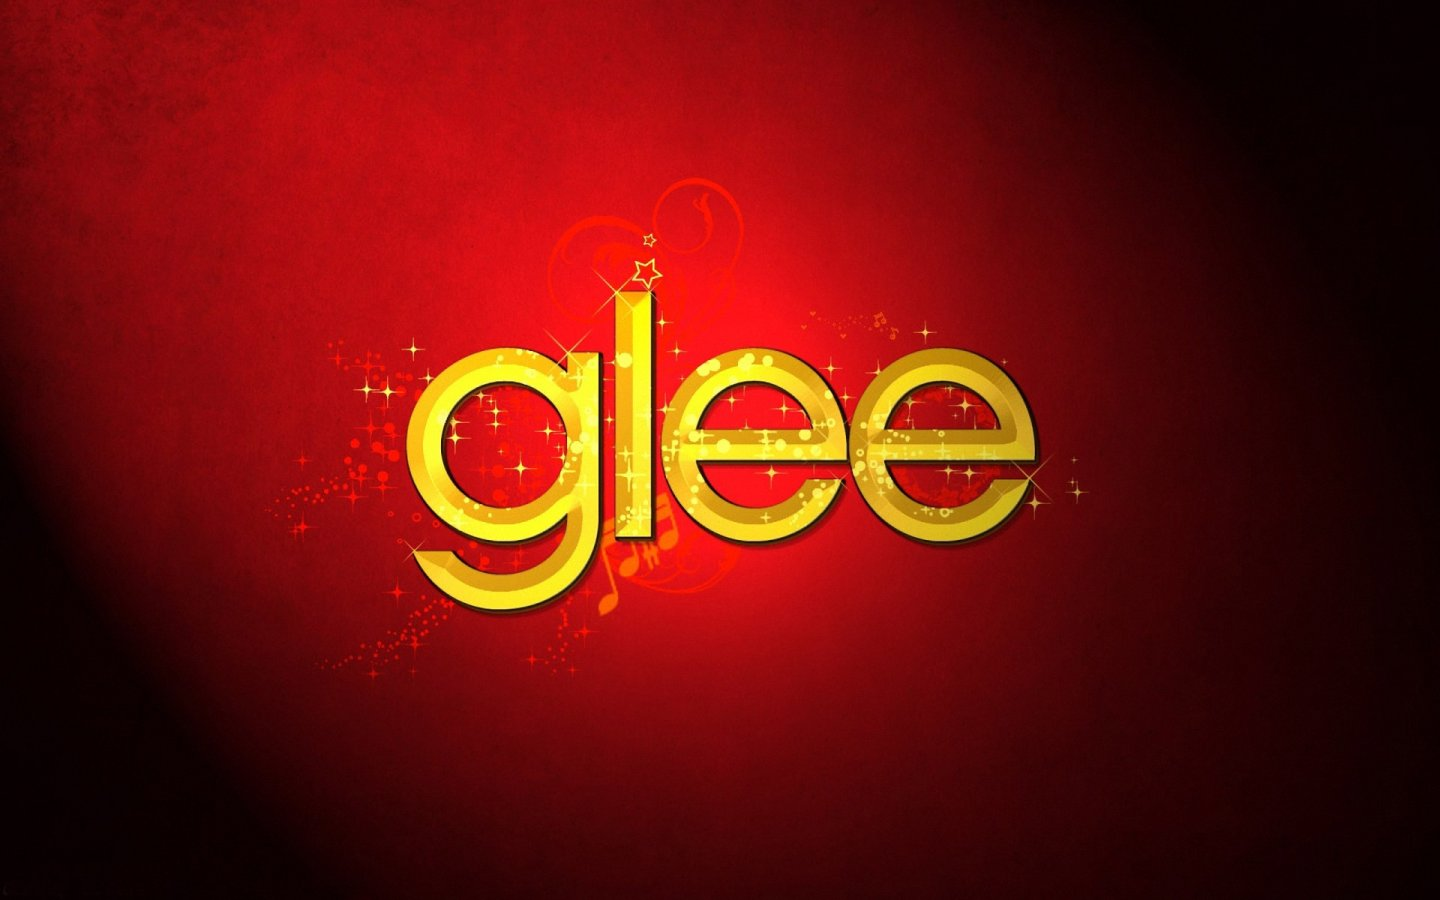 Glee Logo 1440x900 Wallpapers 1440x900 Wallpapers Pictures 1440x900